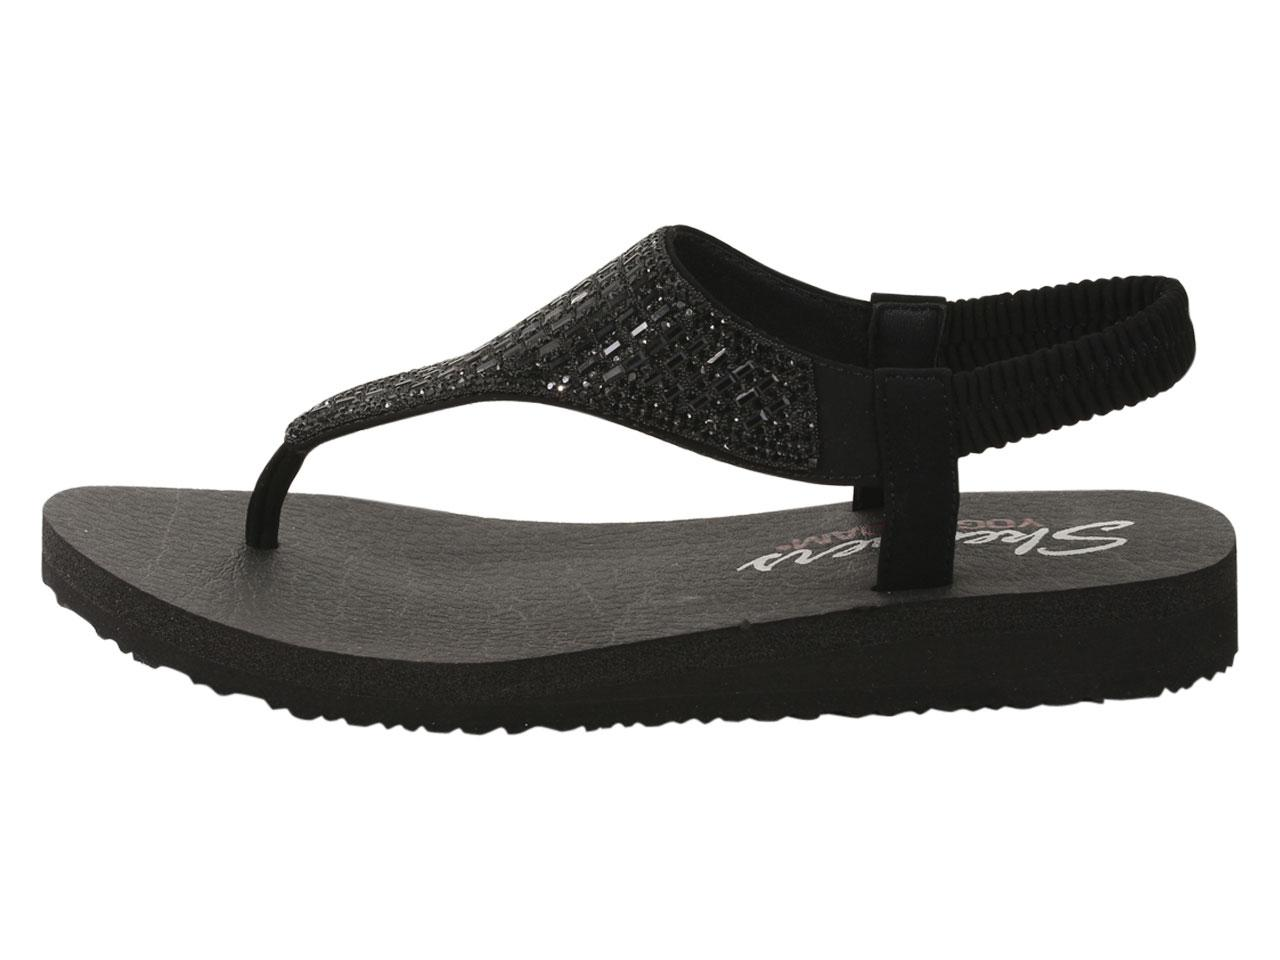 aa2ead7576a66 Skechers Women s Meditation Rock Crown Yoga Foam Sandals Shoes by Skechers.  1234567